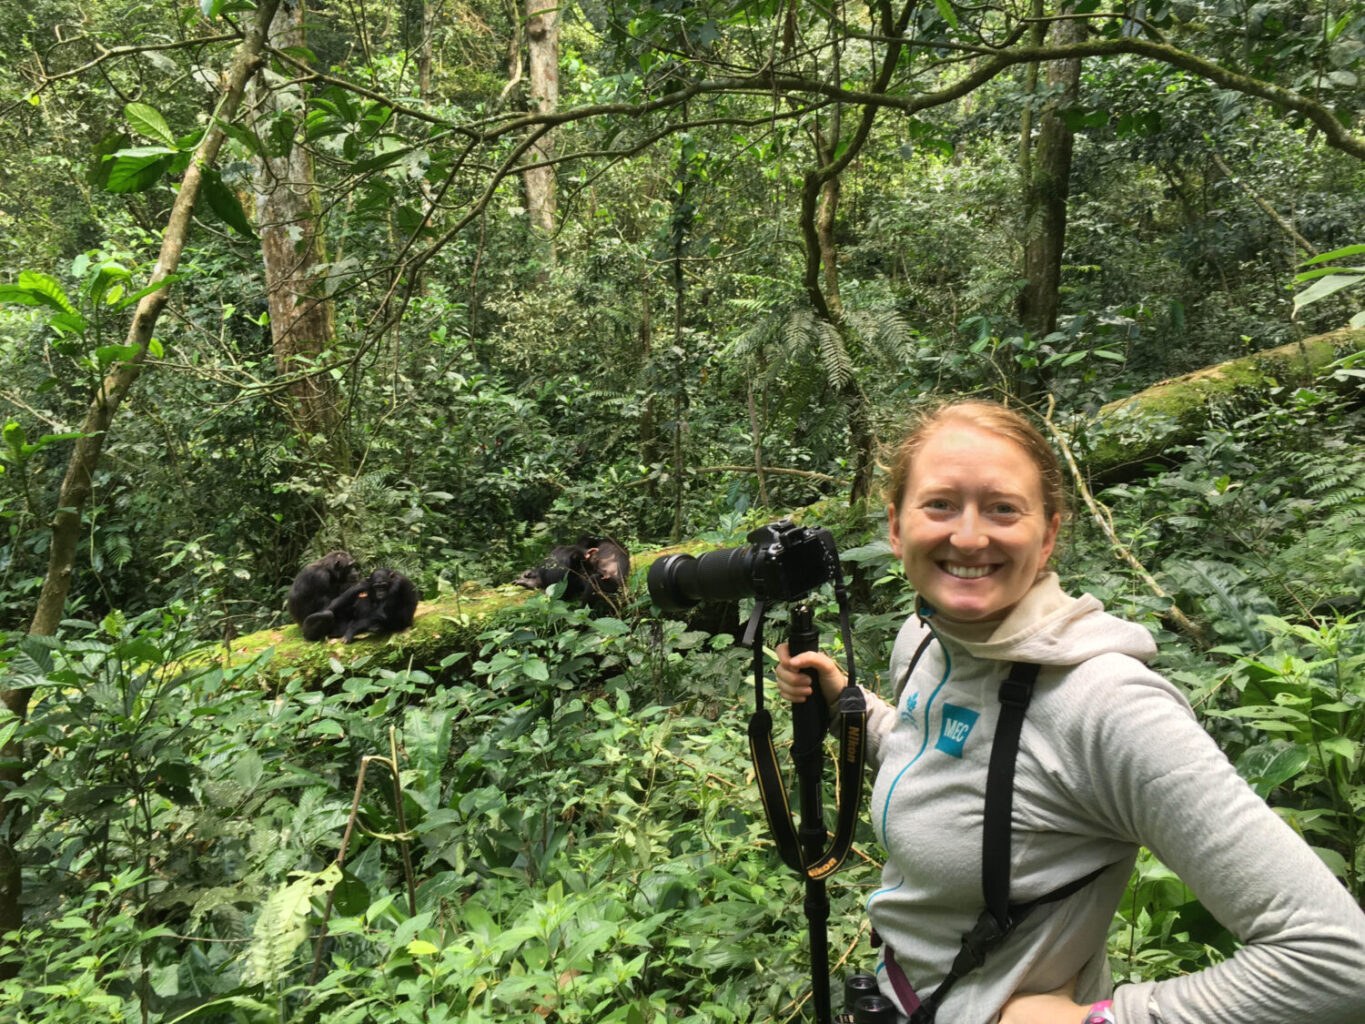 A smiling scientist is in a green leafy forest. She is holding a camera and looking at the viewer. Several chimpanzees are behind her, grooming each other on a moss-covered log.